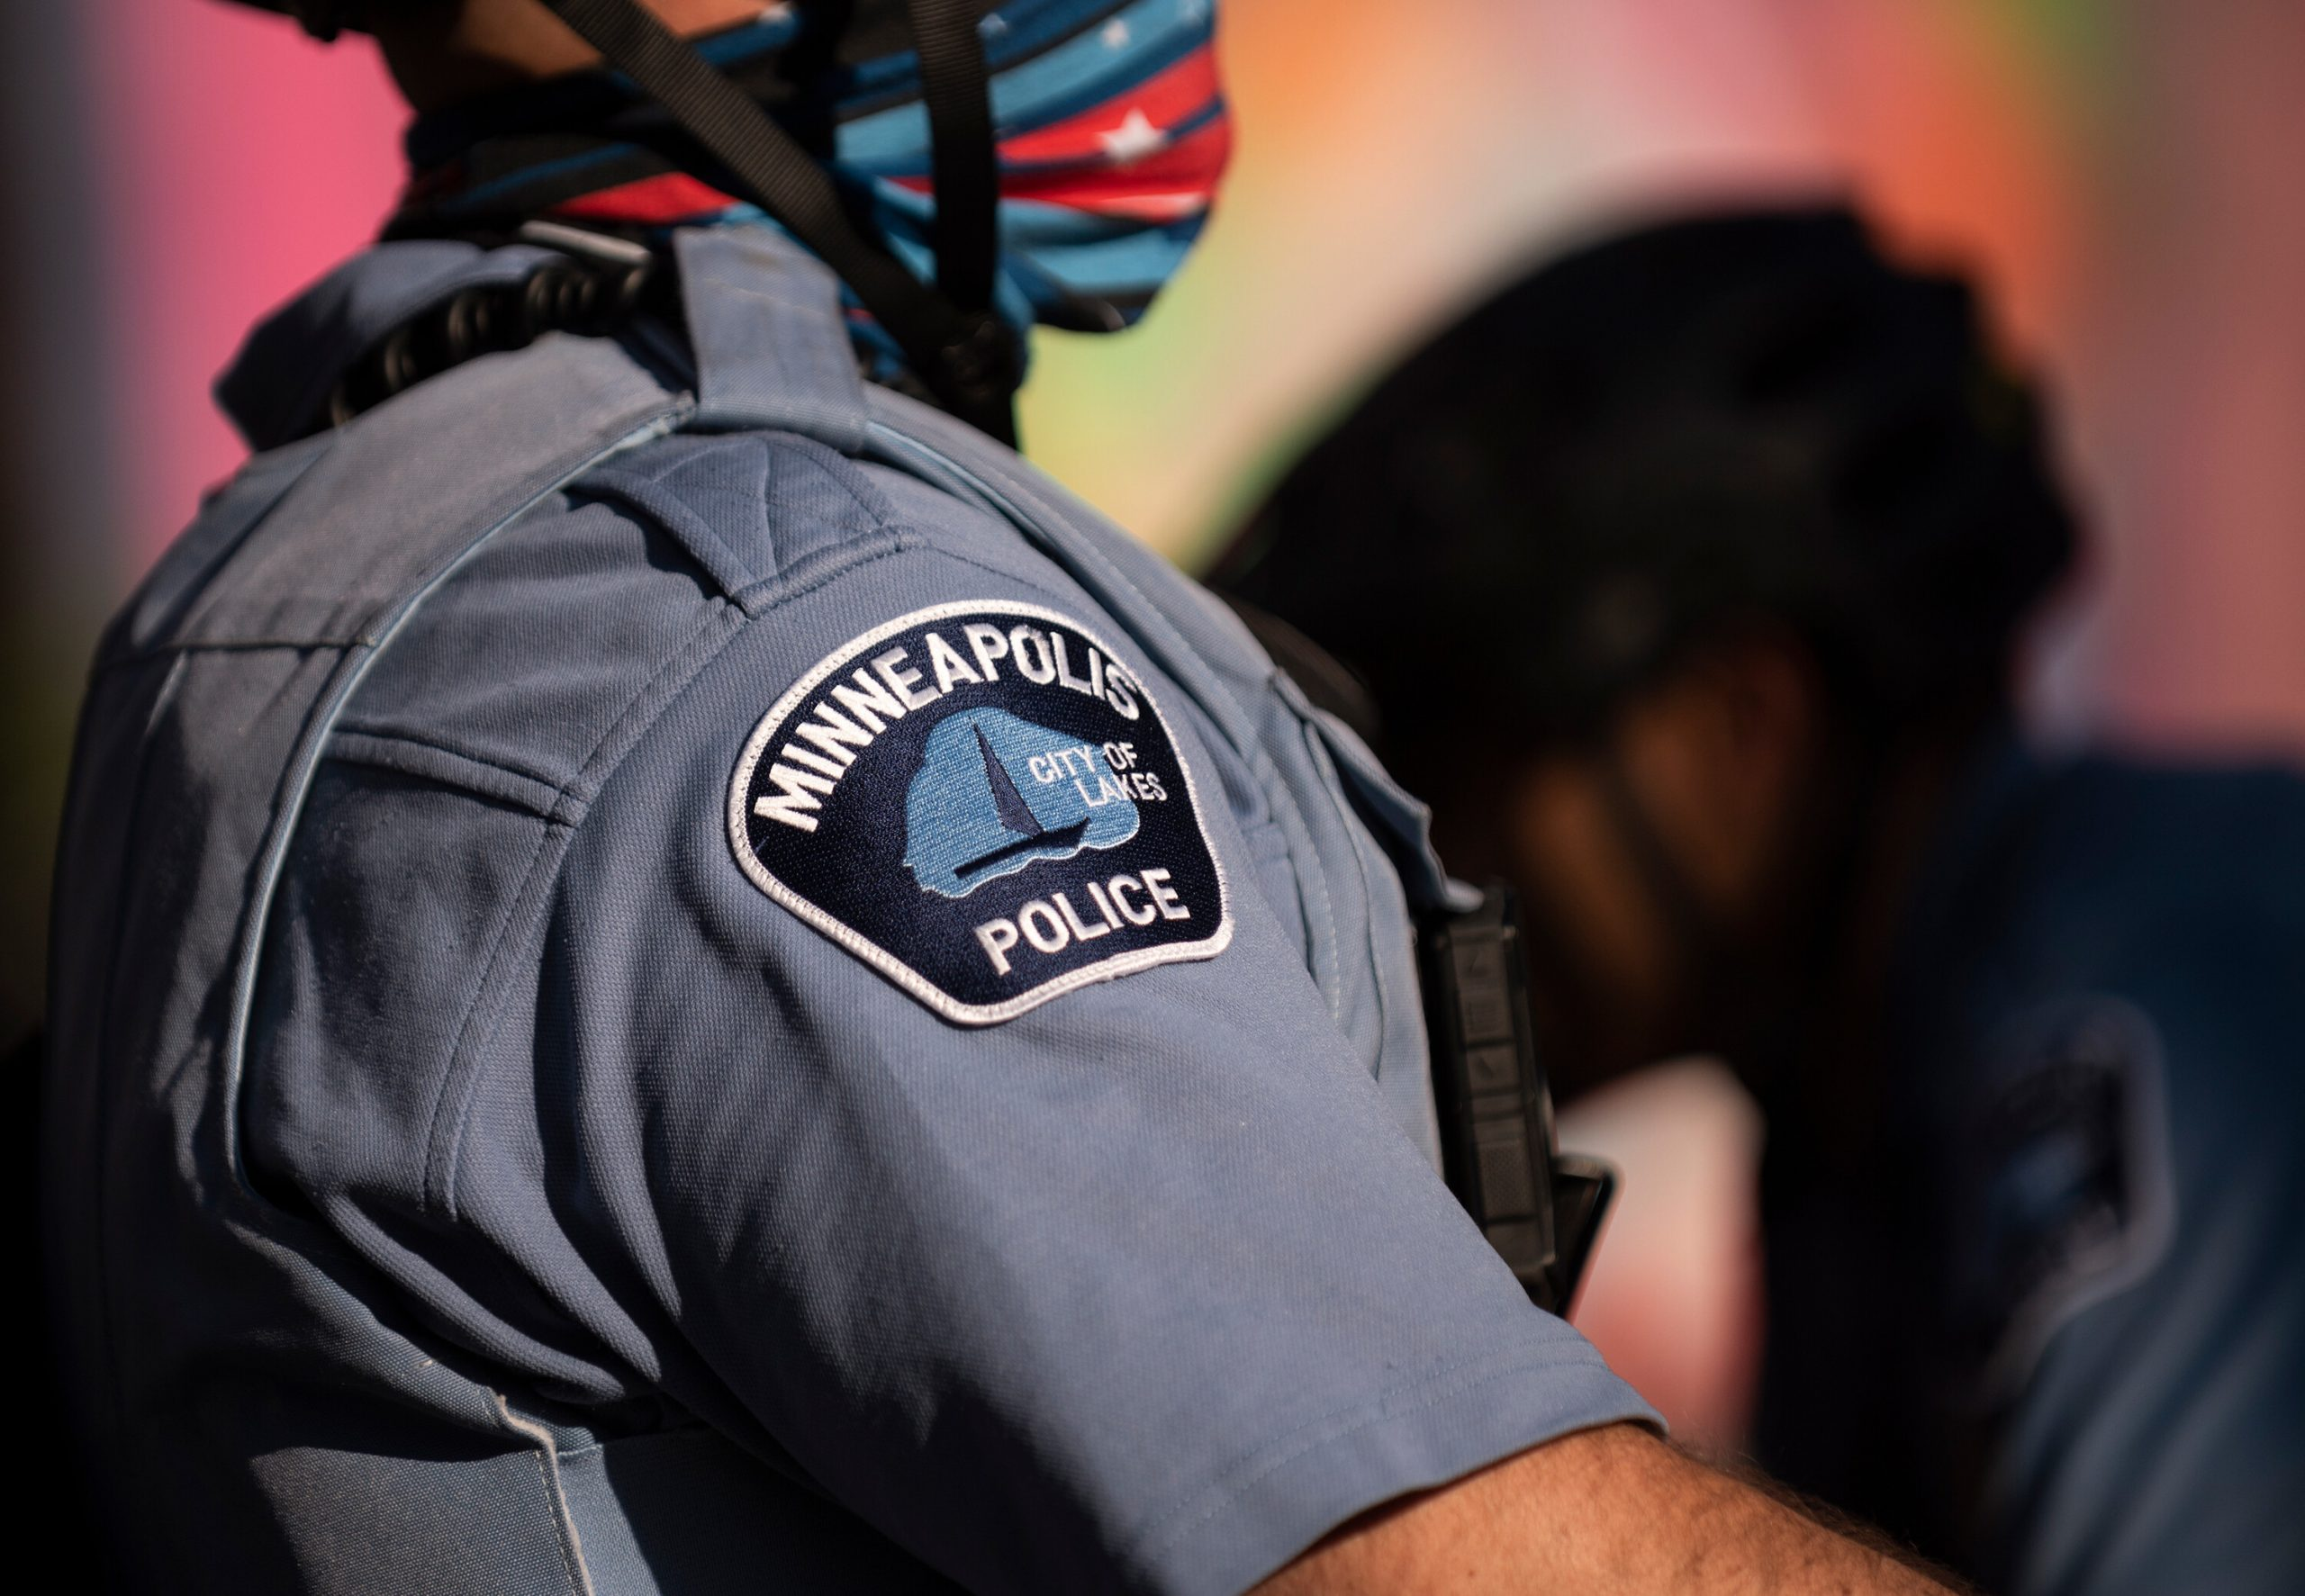 <i>Stephen Maturen/Getty Images</i><br/>Officials on Friday approved the language of a ballot measure that will ask voters in November whether the city's police department should be replaced with public safety department.